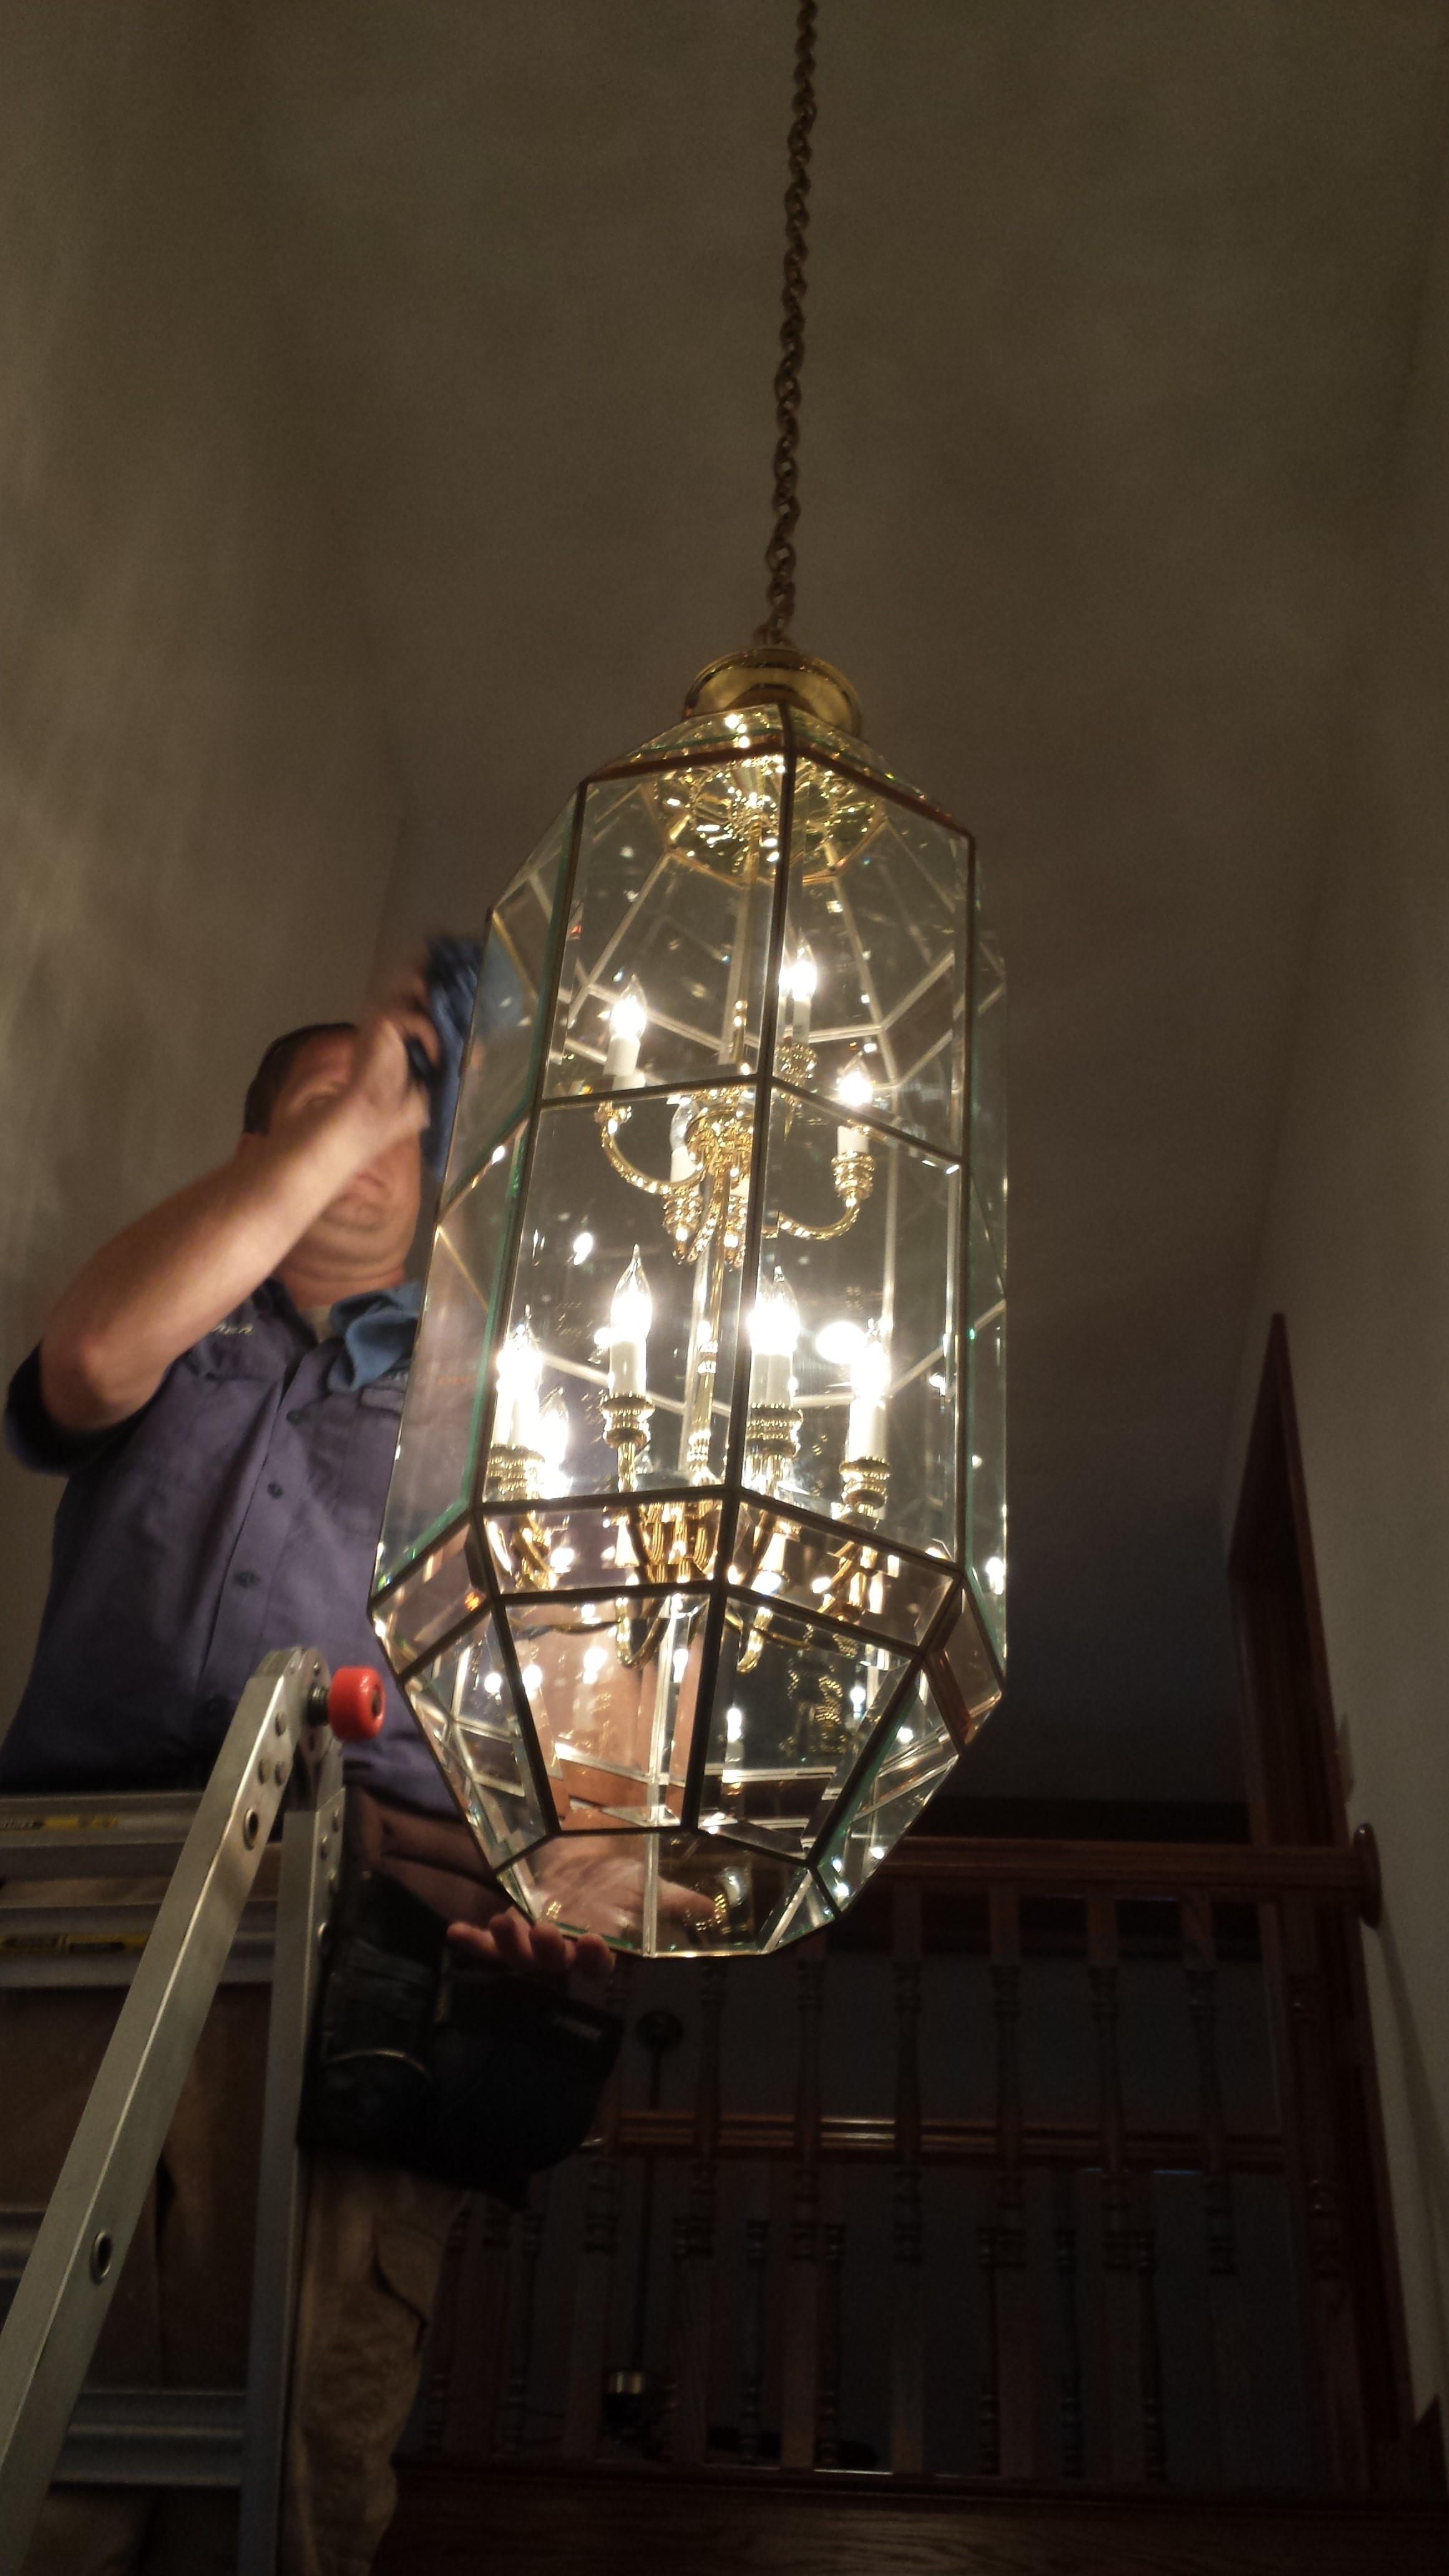 Chandelier cleaning twodudeswc 20130821125644 mozeypictures Images